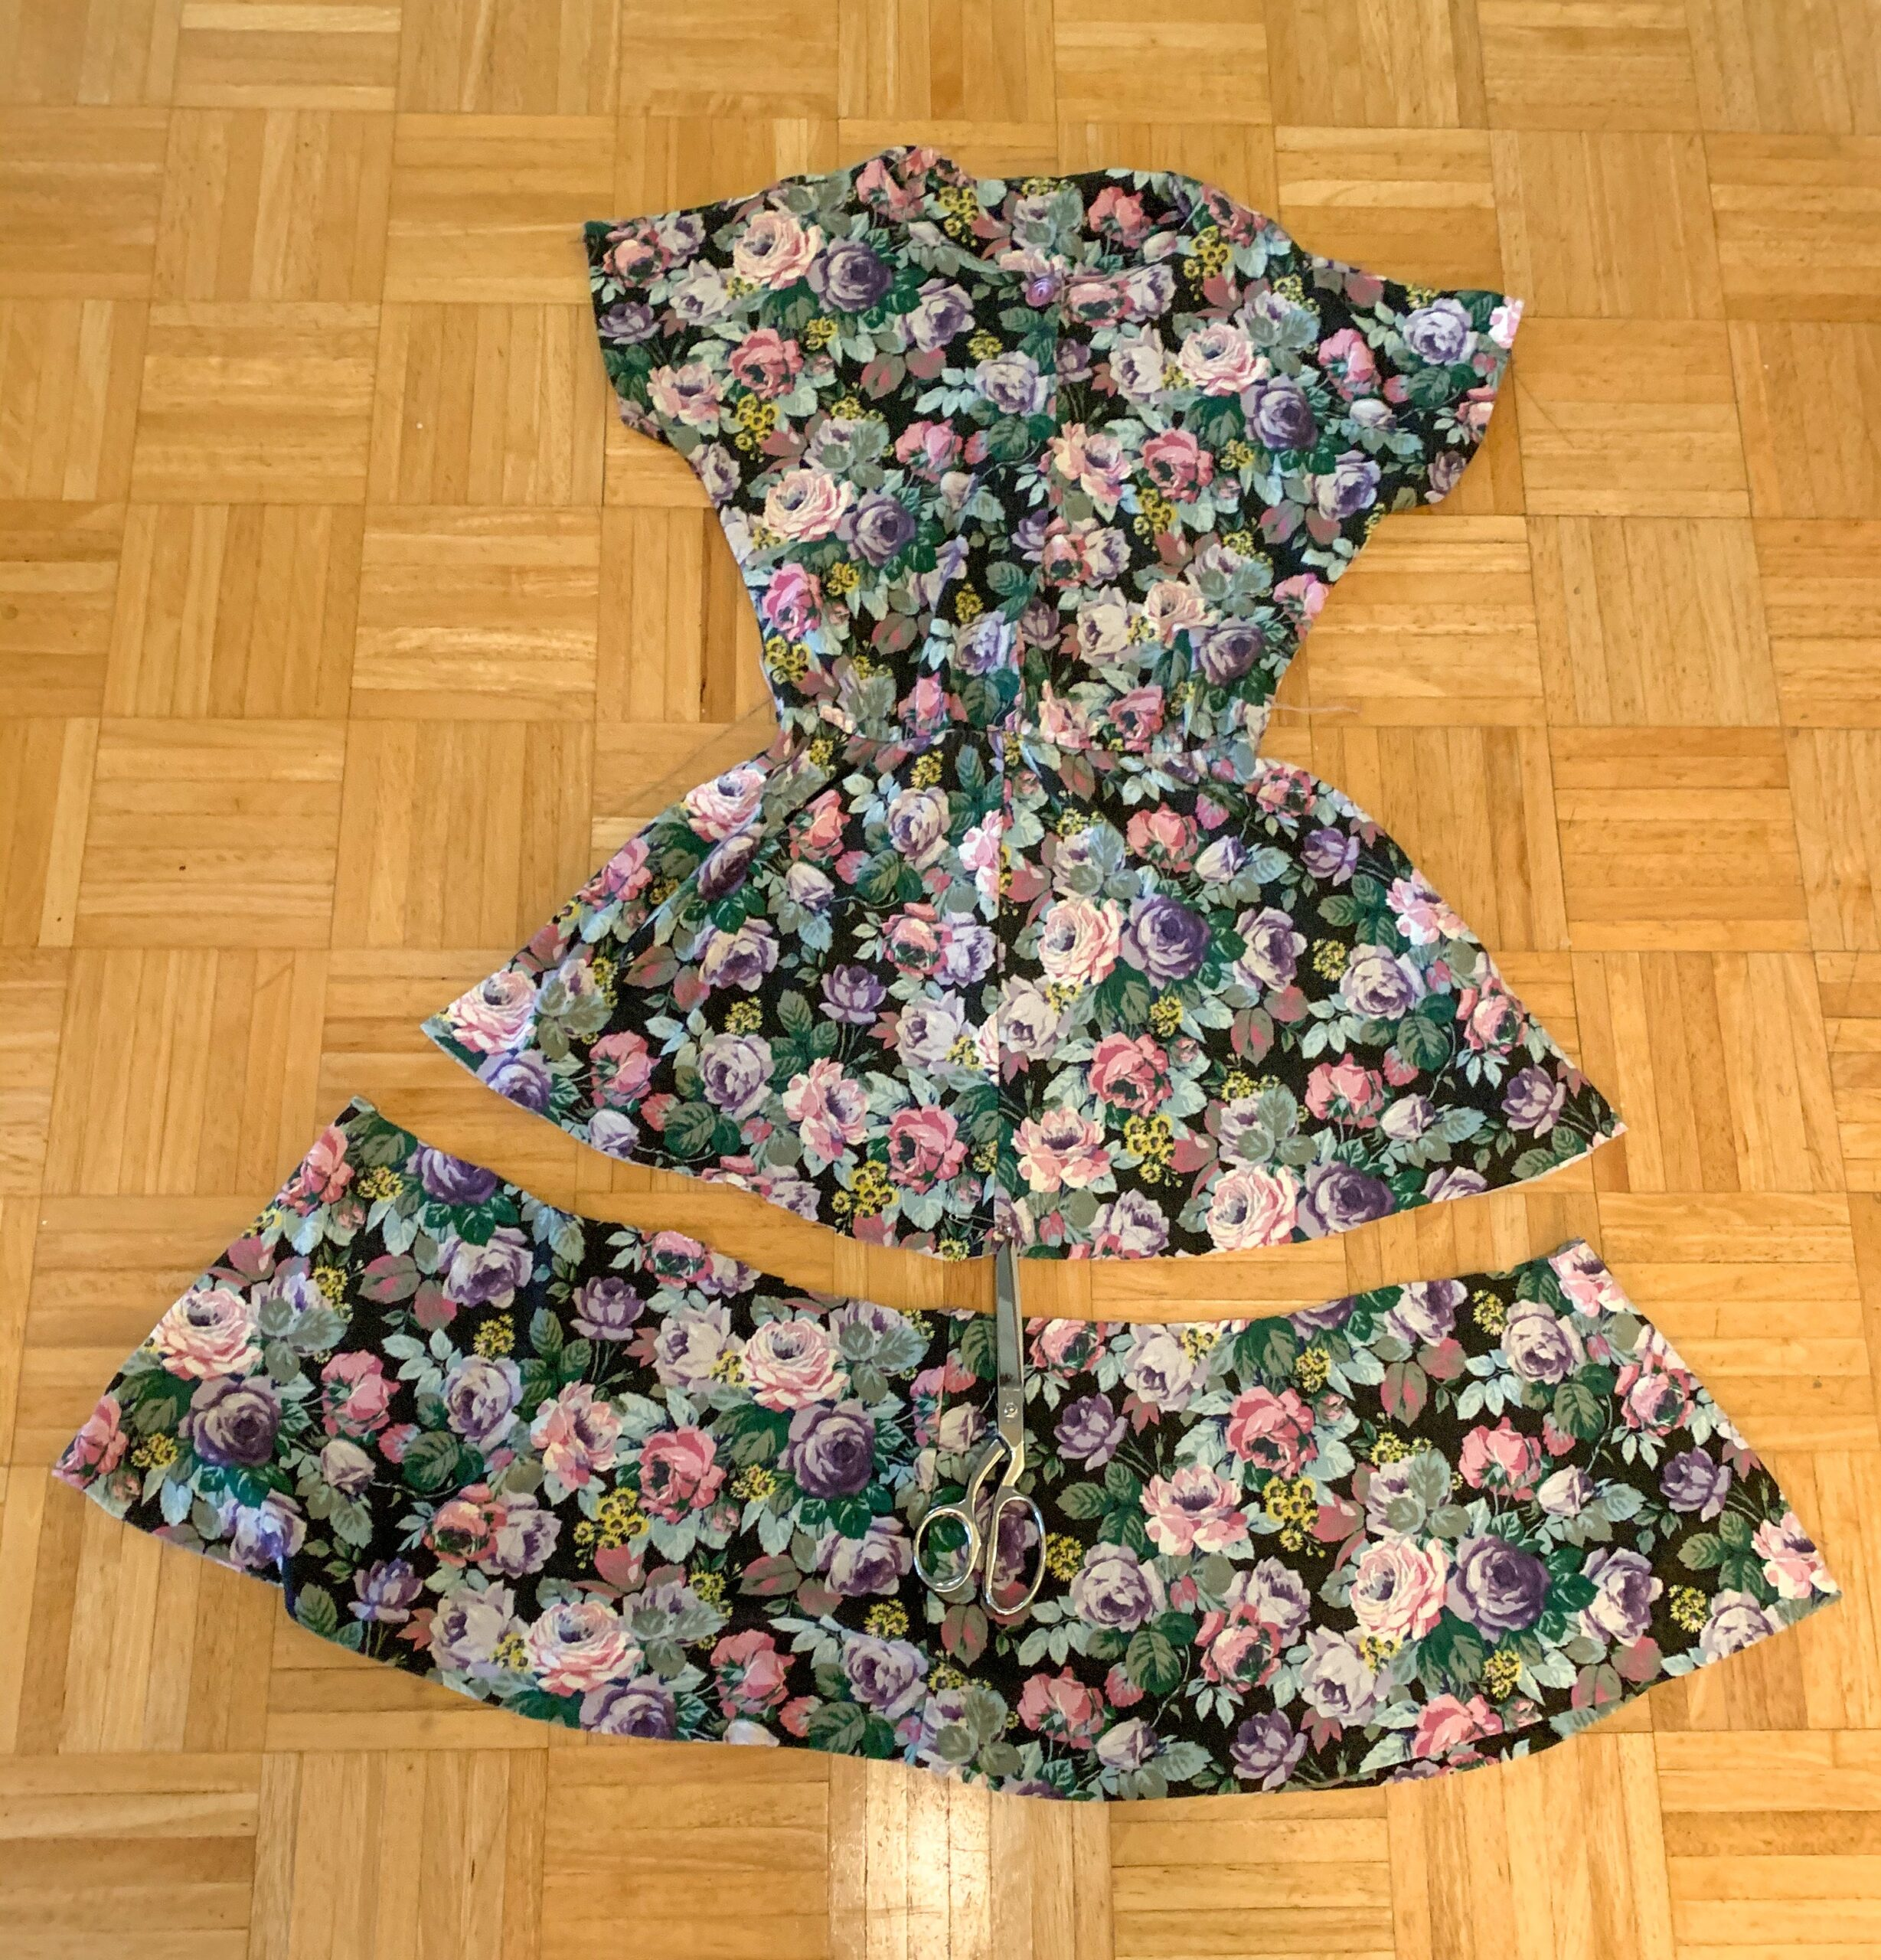 cutting off bottom of dress for romper